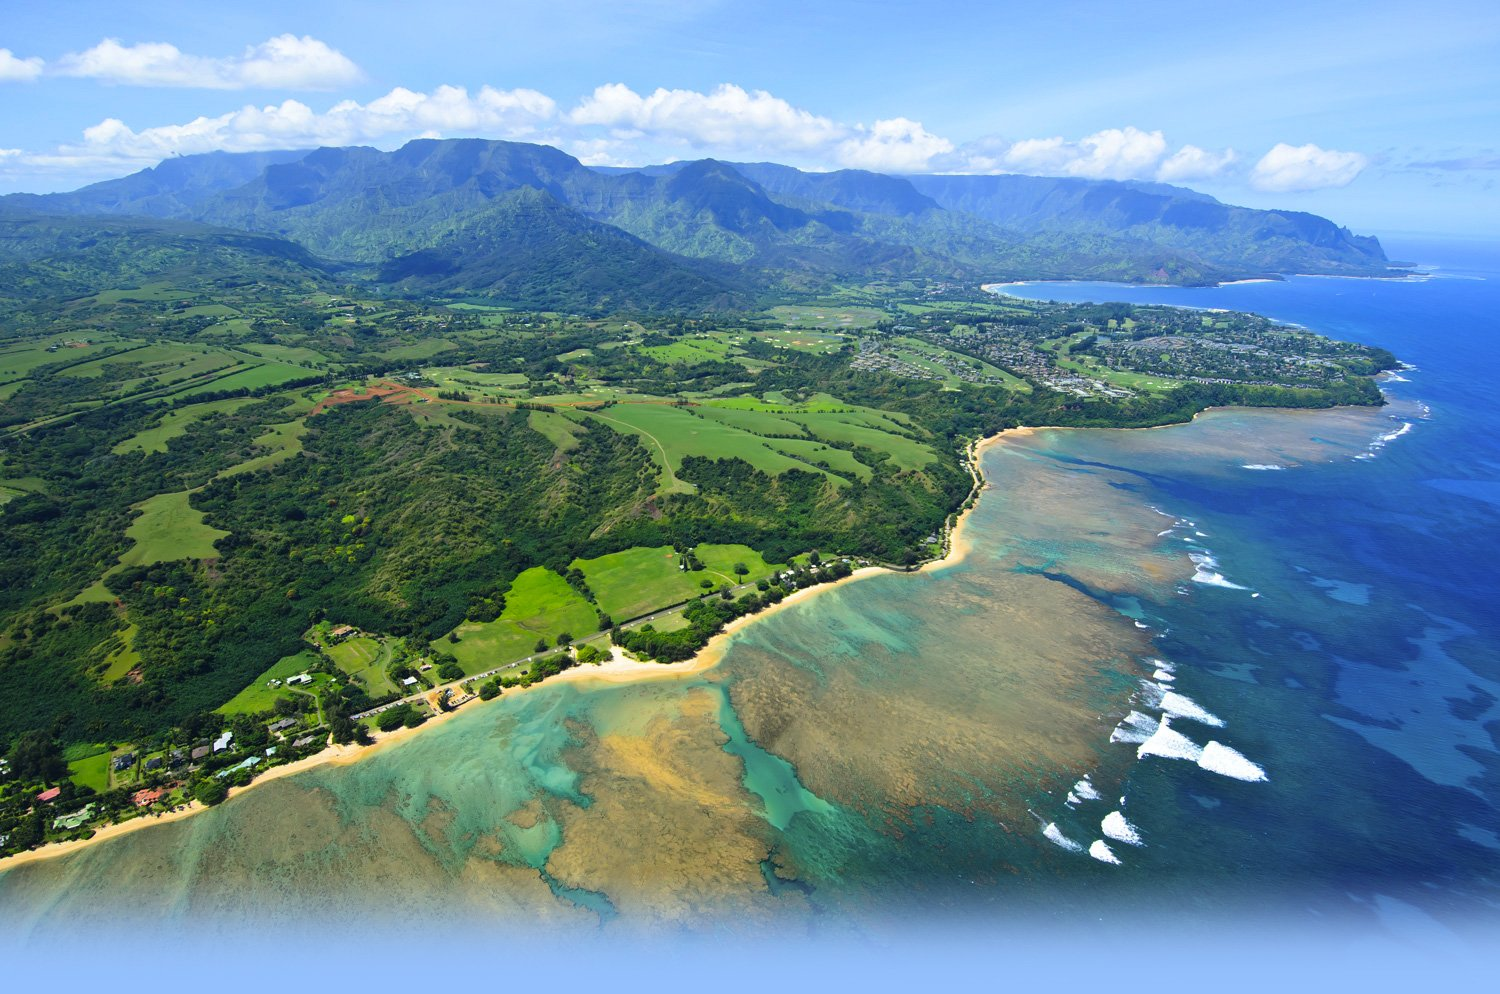 Kauai Zipline Tours, Zip Express 11:30 am Tour